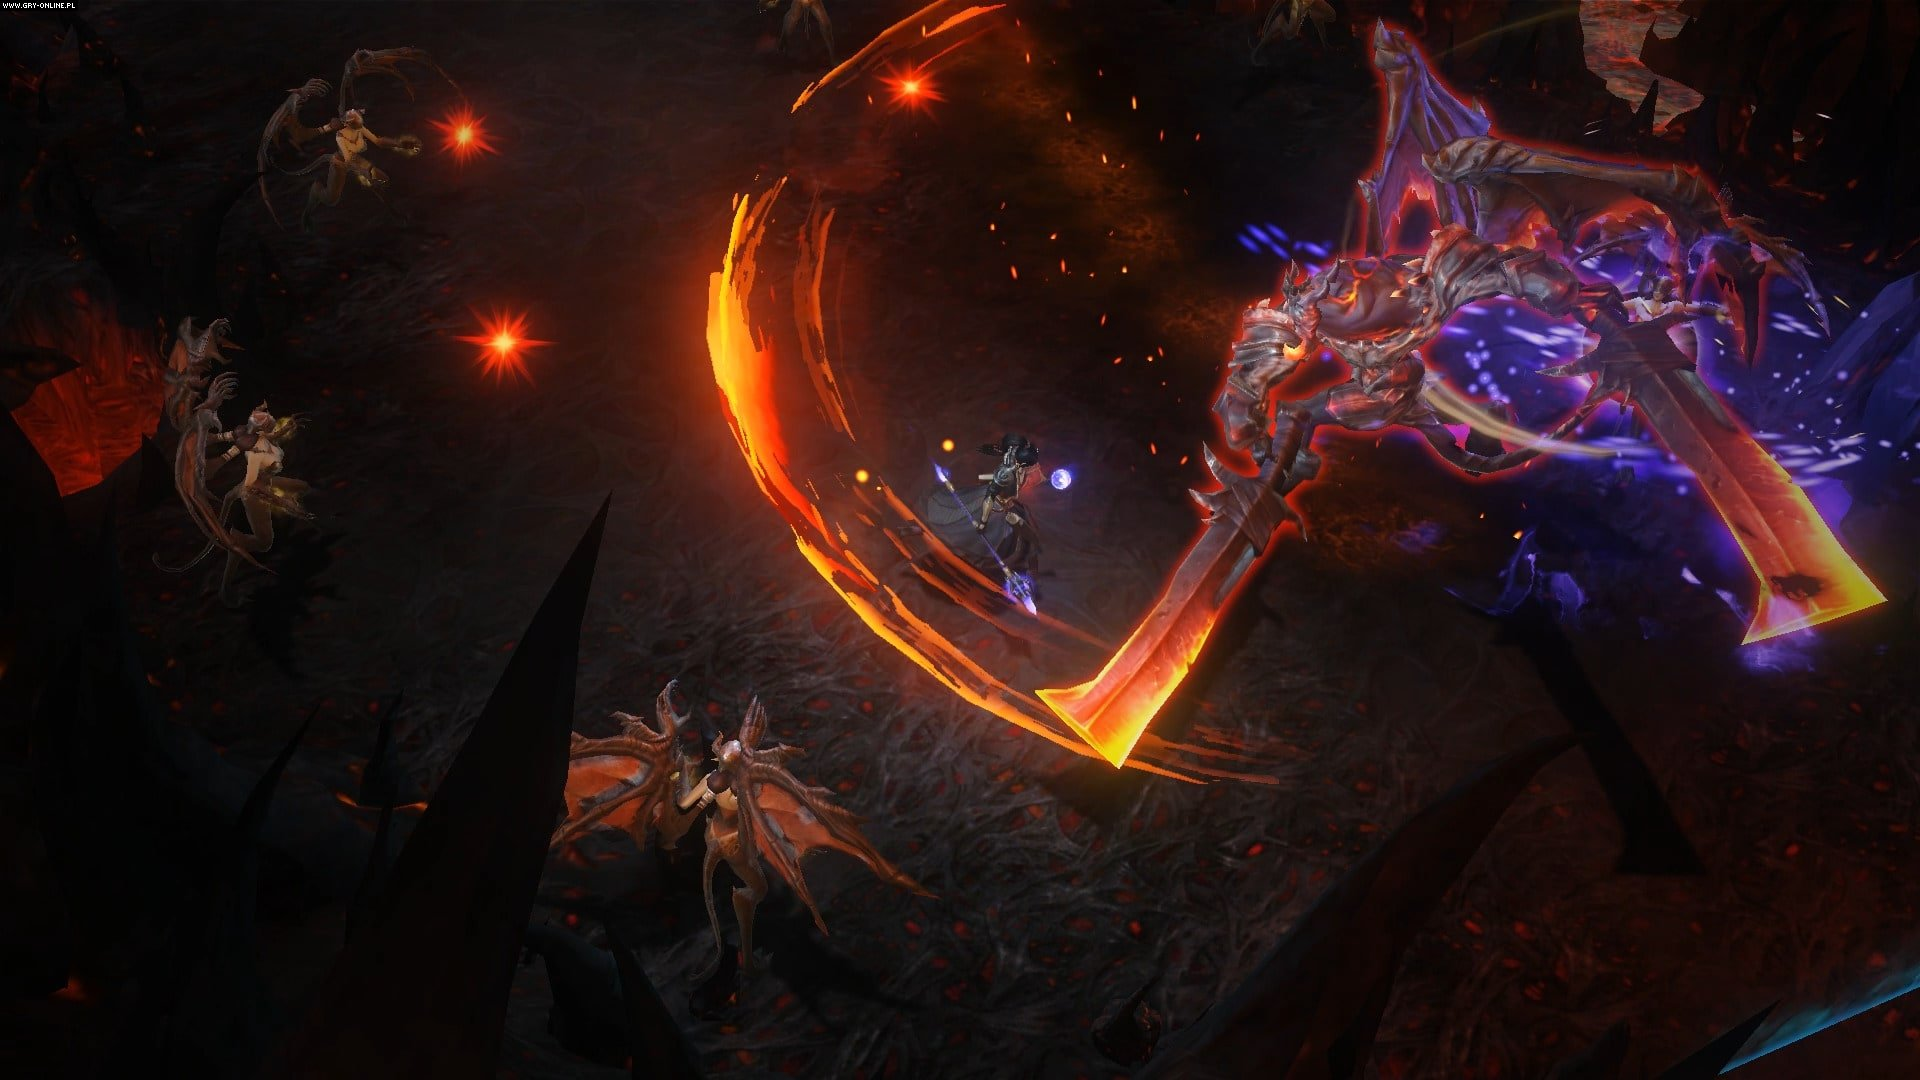 Diablo Immortal iOS, AND Games Image 24/36, NetEase, Activision Blizzard